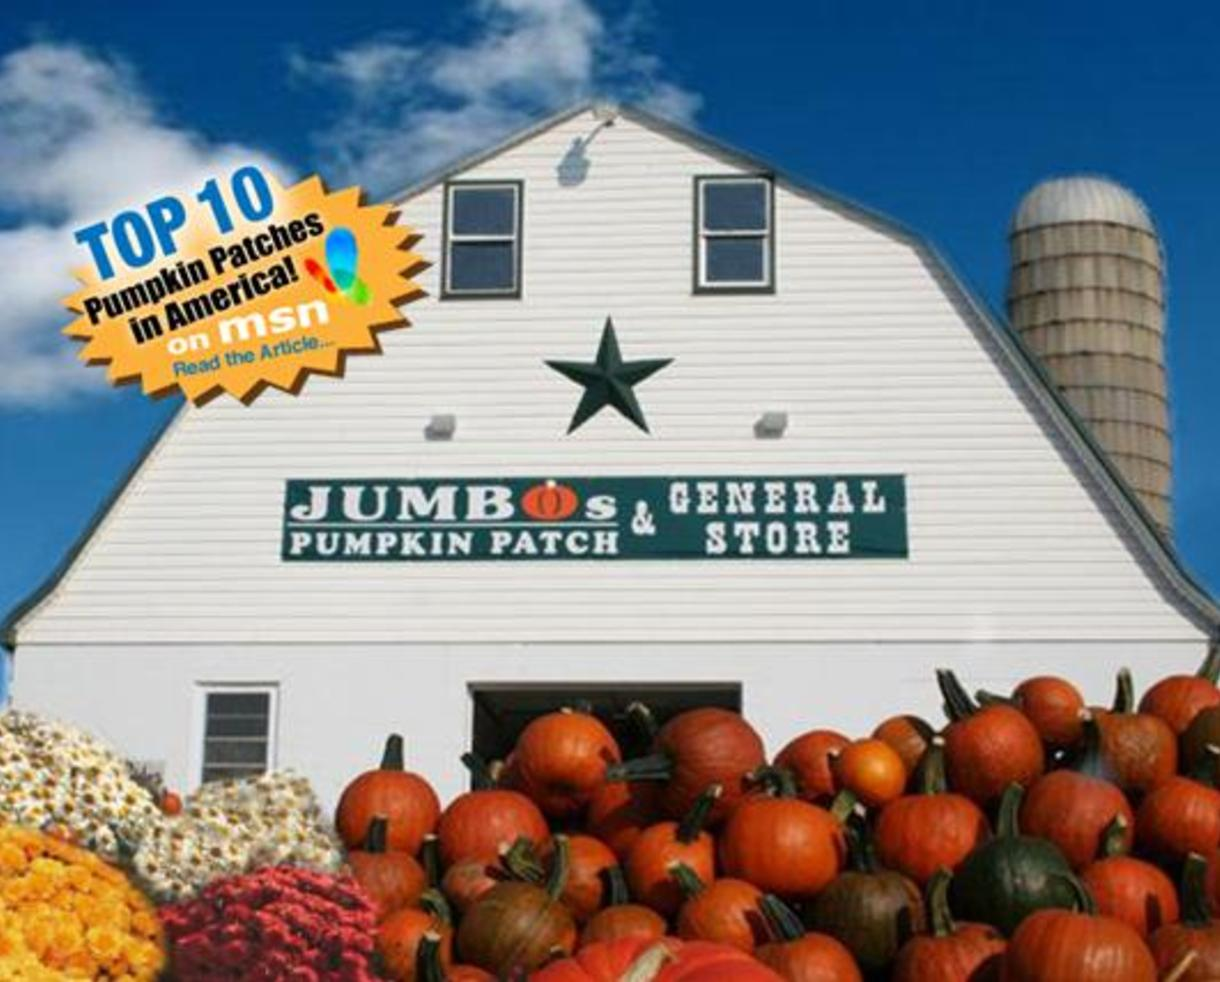 $10 for 4-Pack of Tickets to Jumbo's Pumpkin Patch Fall Festivities (50% Off!)